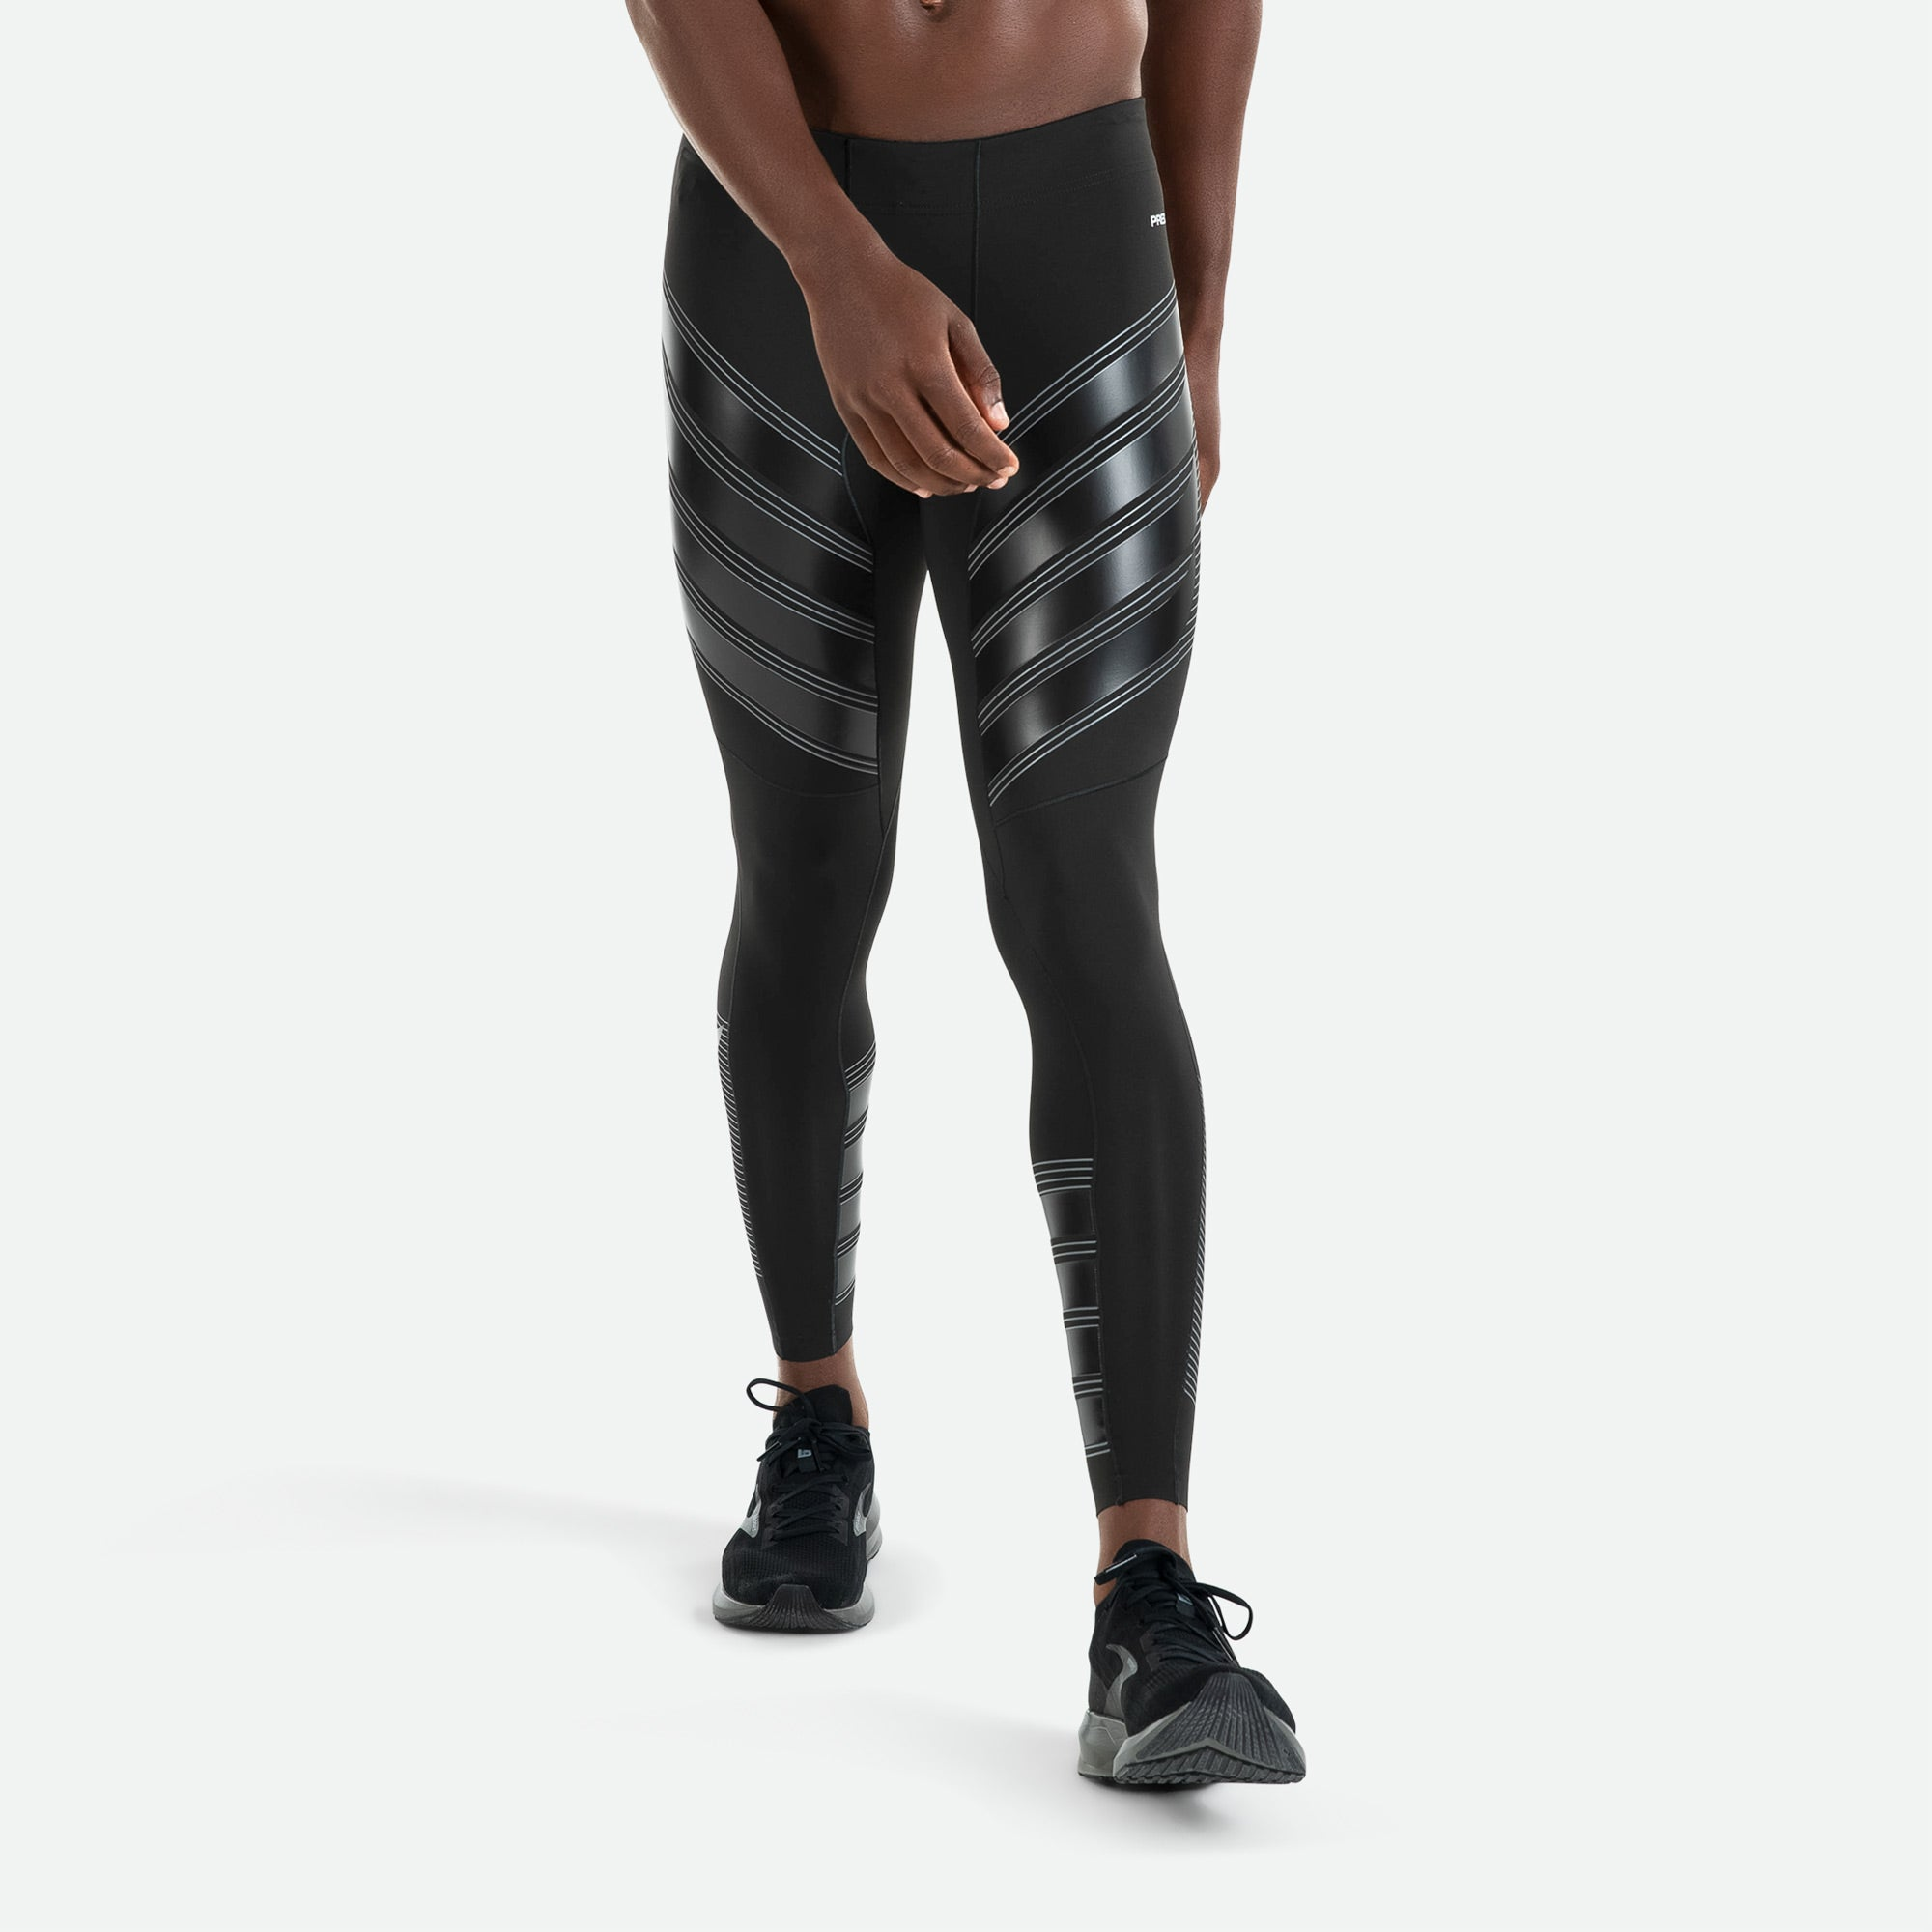 ECO Dye fabric offers greater consistency of power with Pressio men's power compression tight.